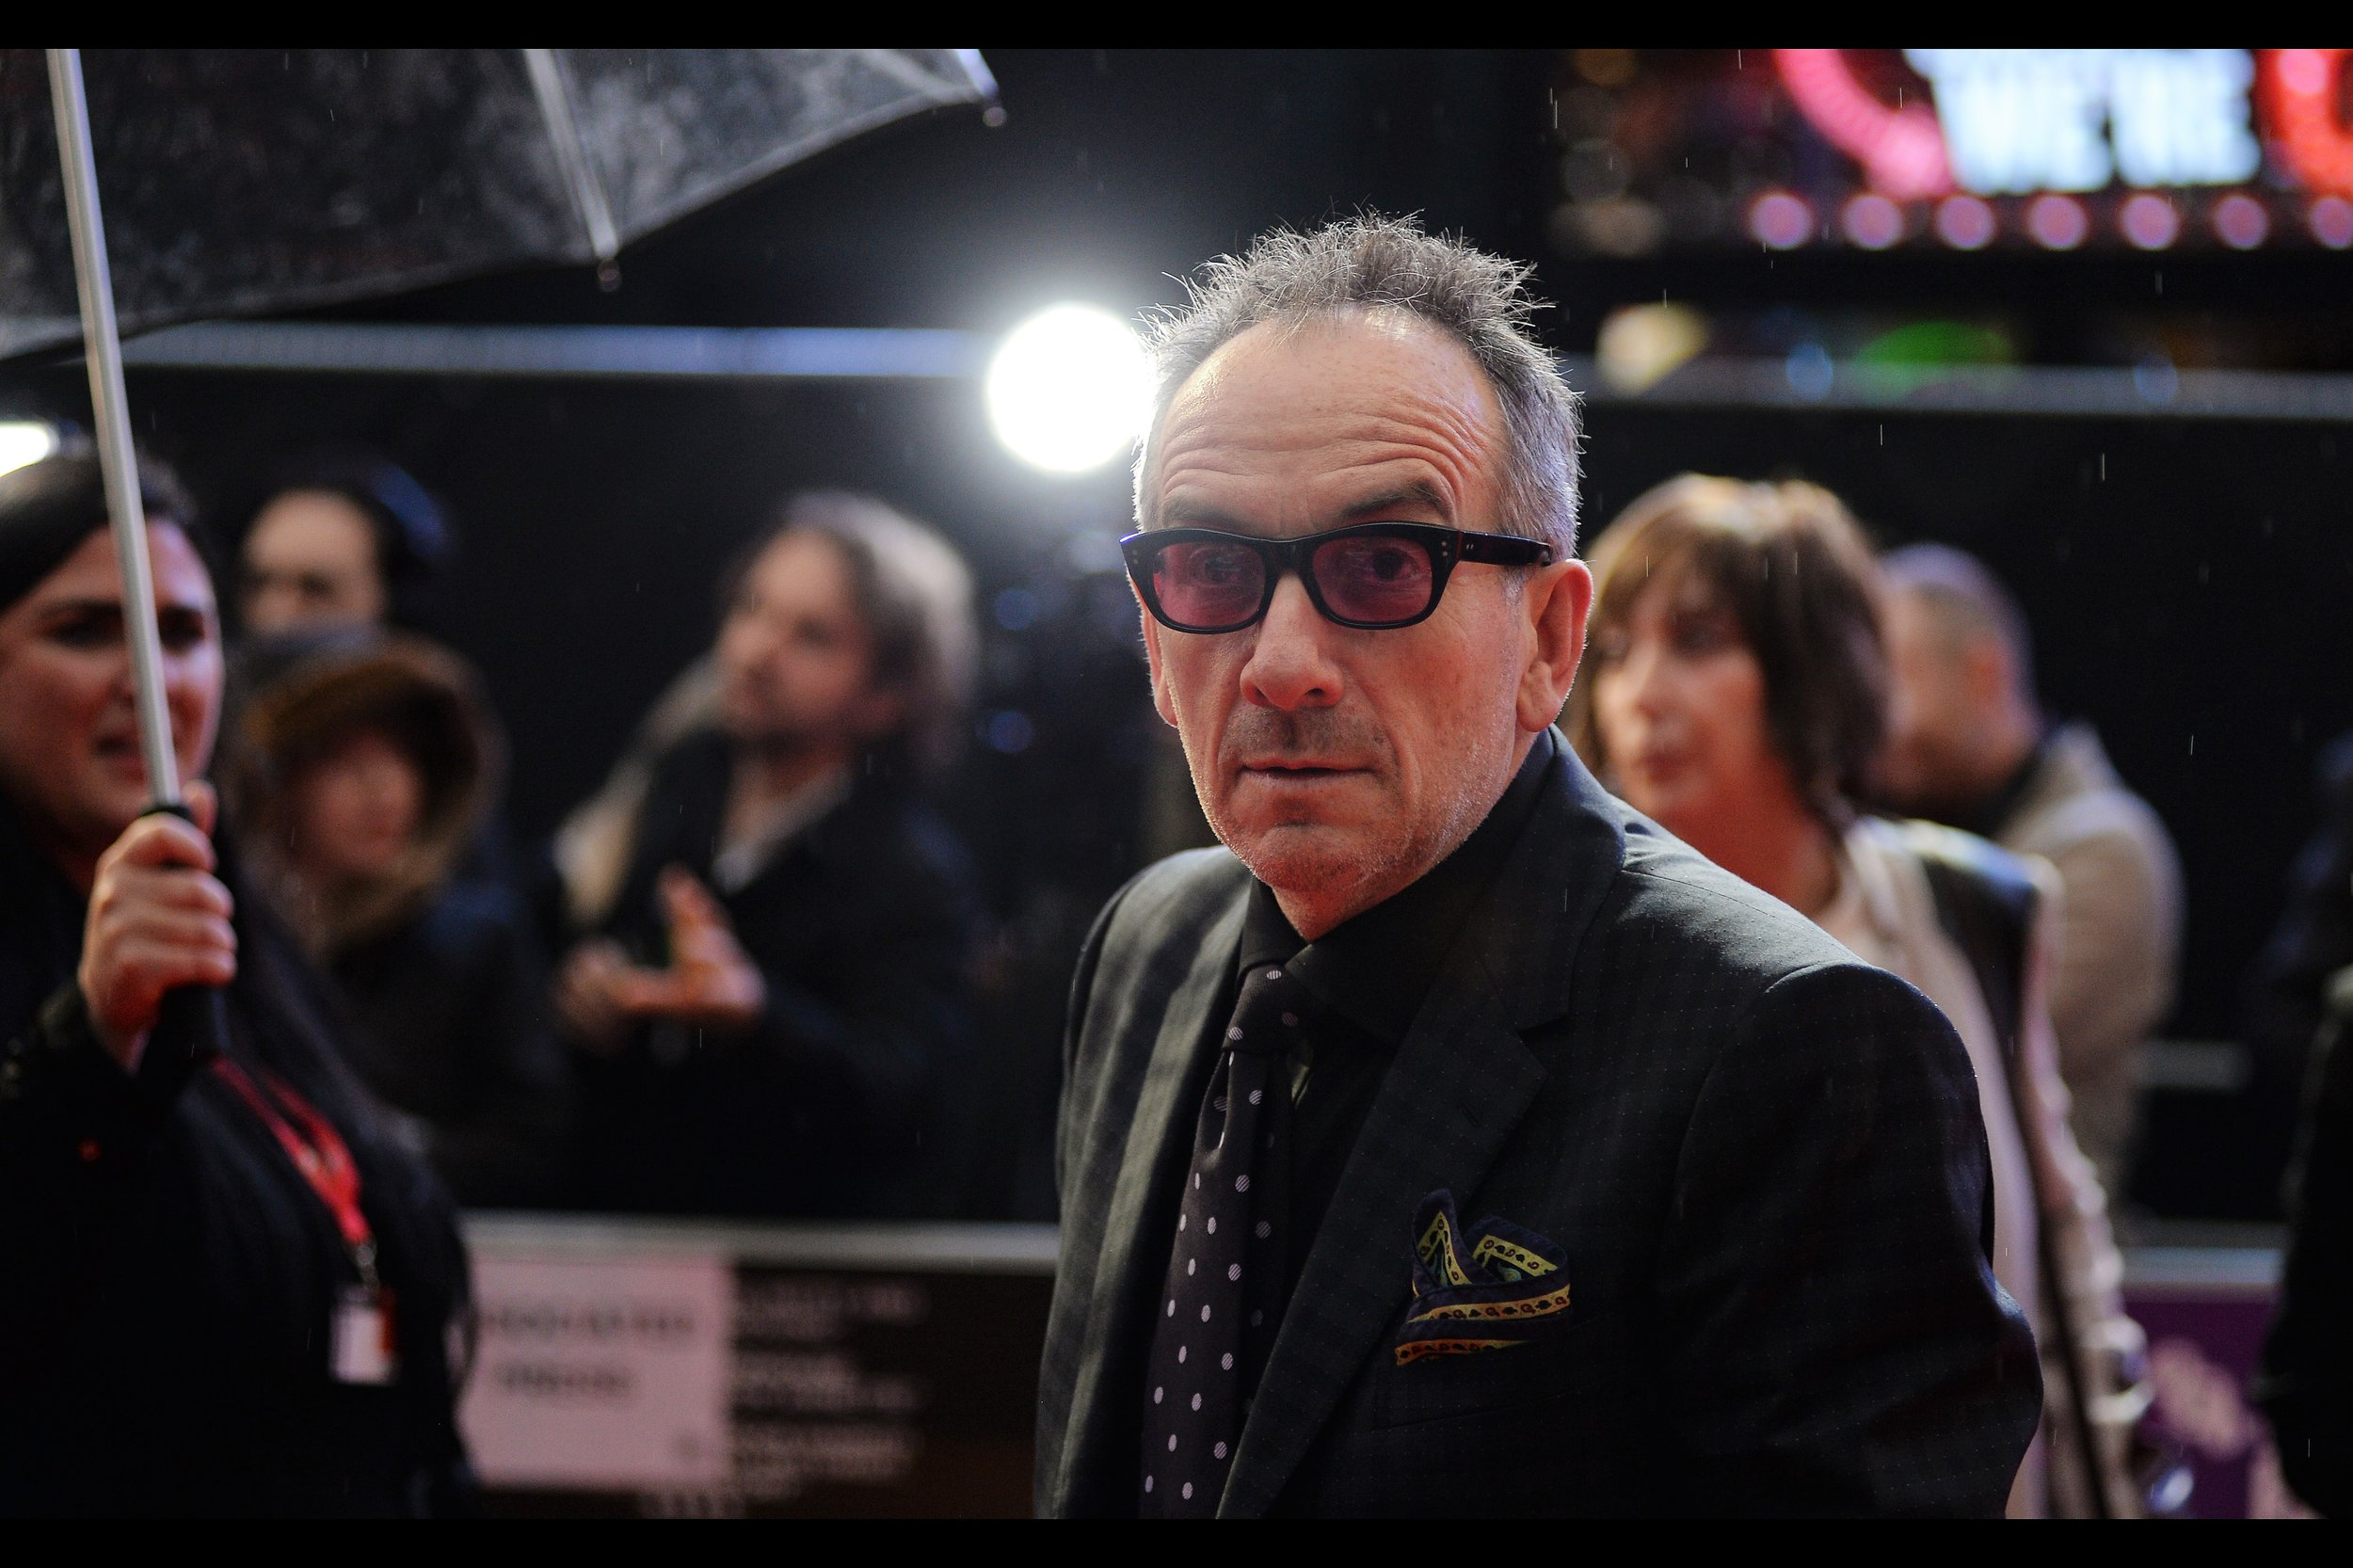 """I'm Elvis Costello?"" Apparently so."